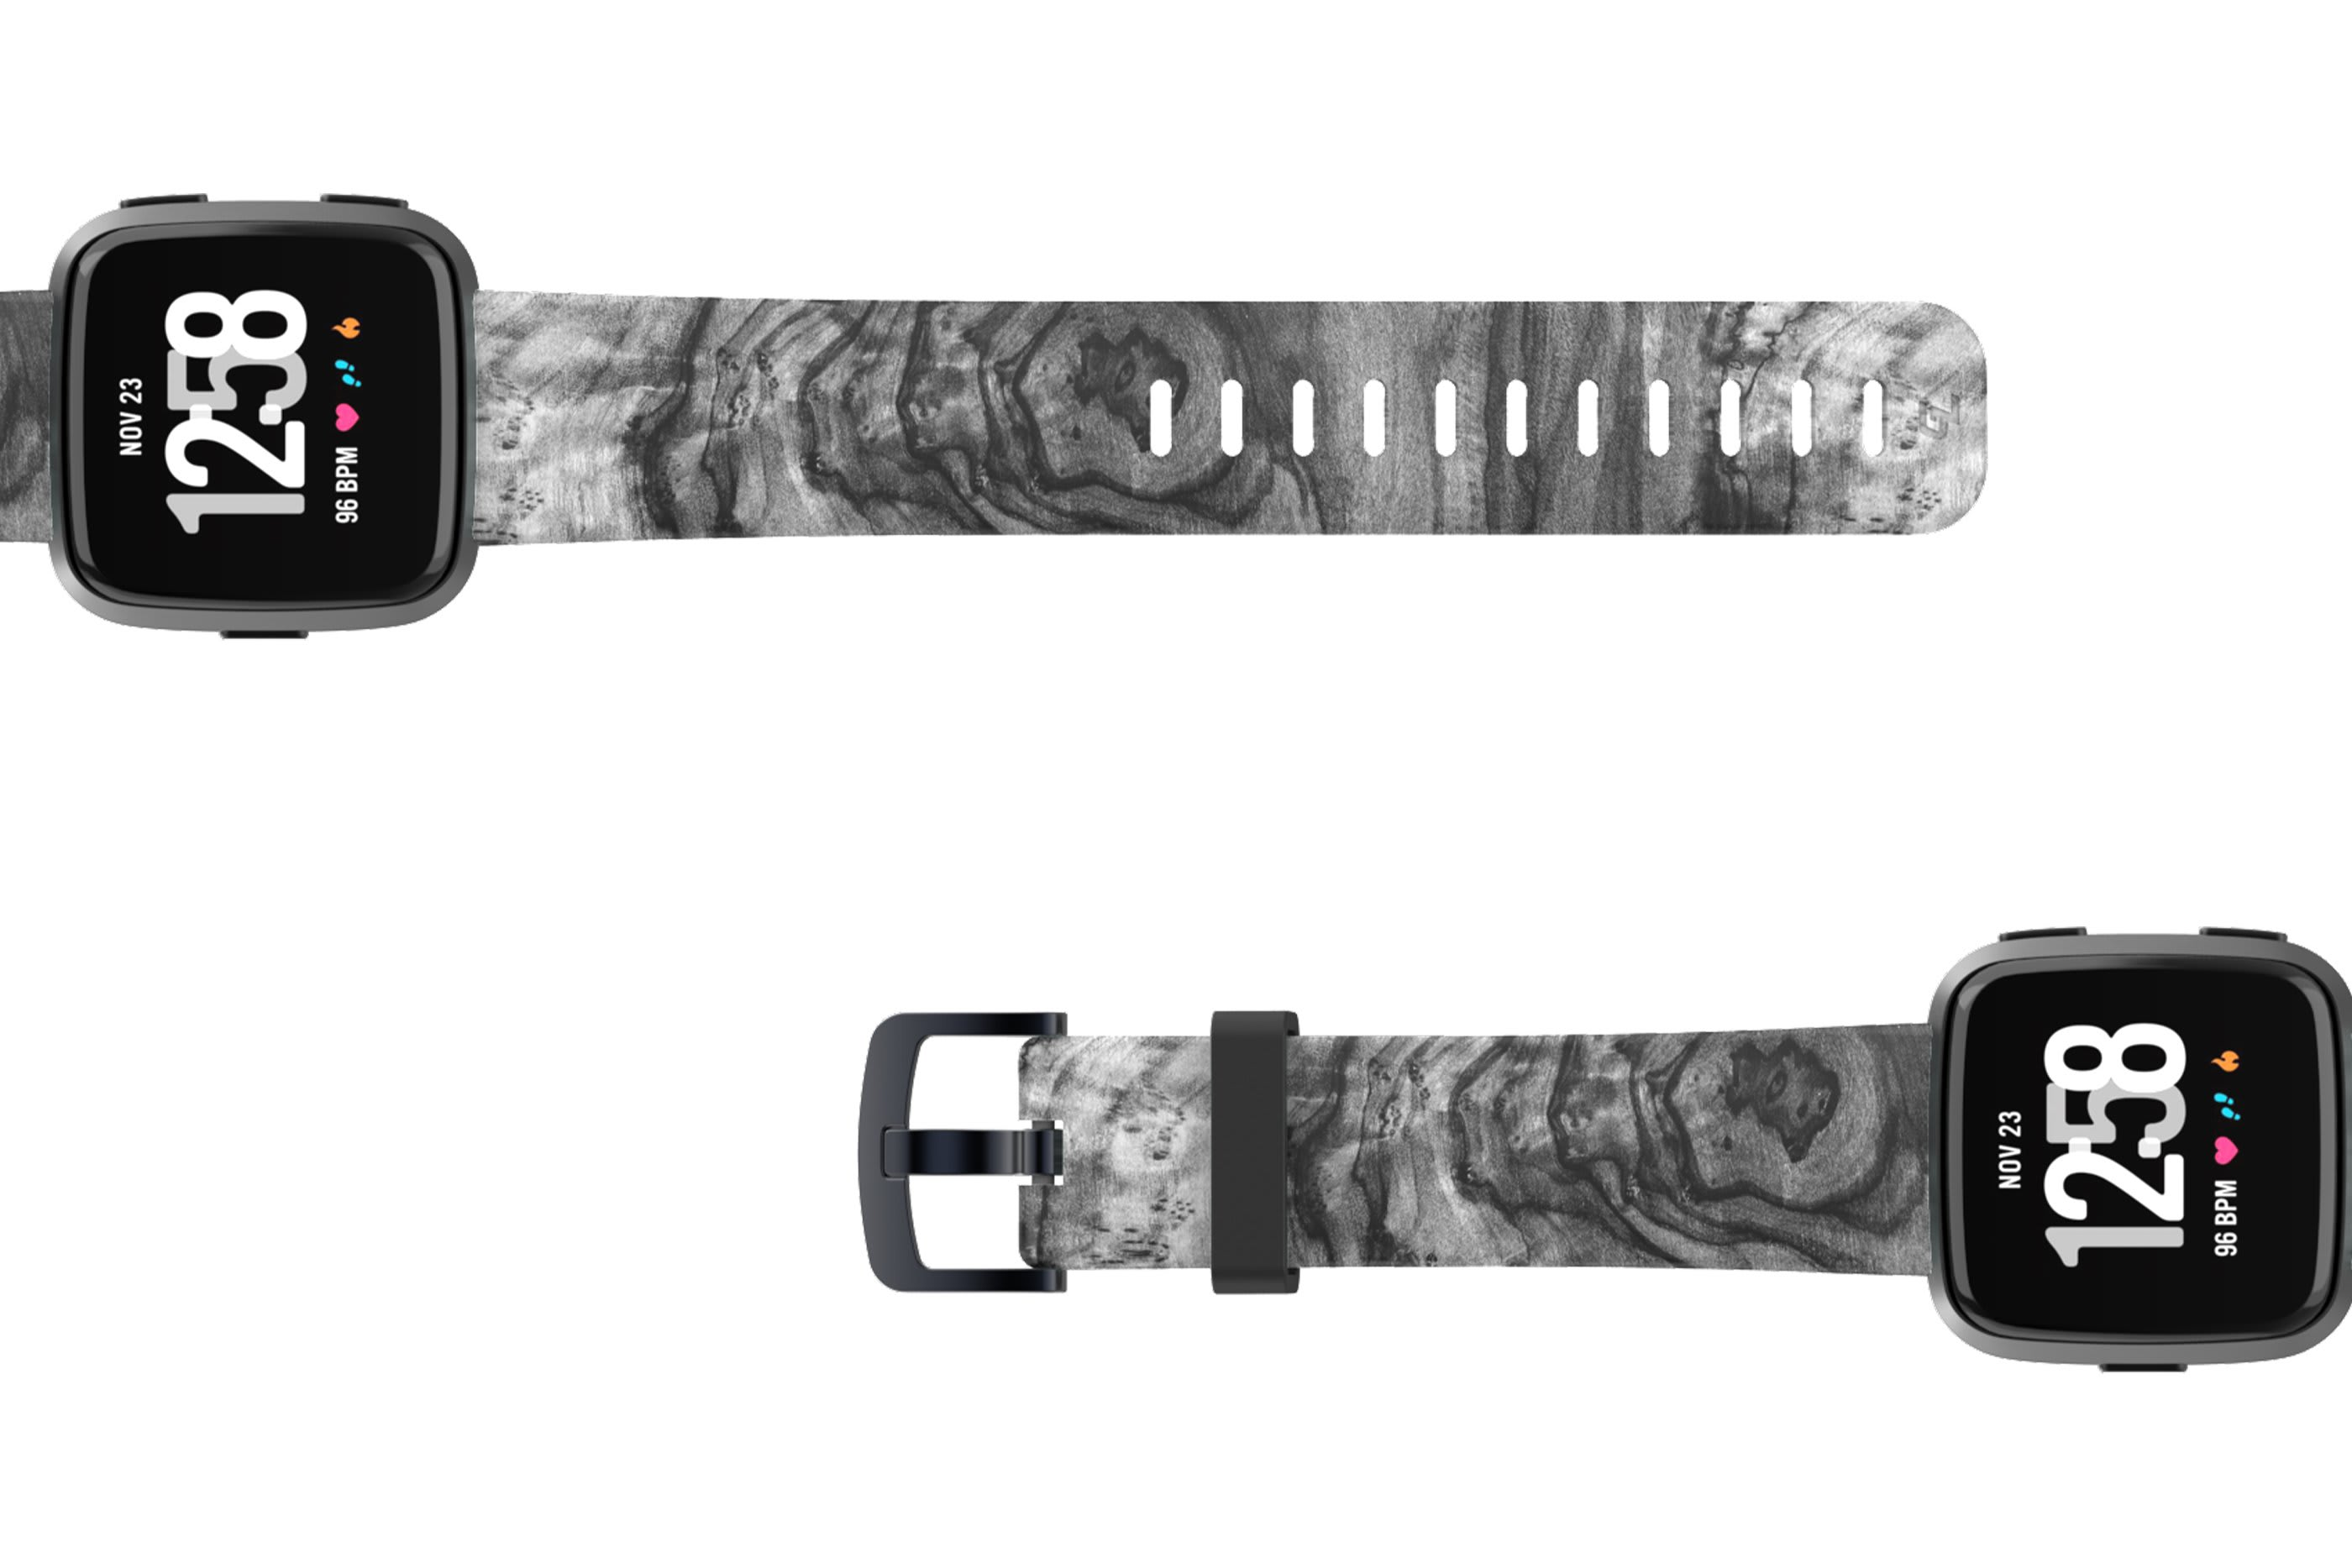 Nomad Relic Fitbit Versa watch band with gray hardware viewed top down